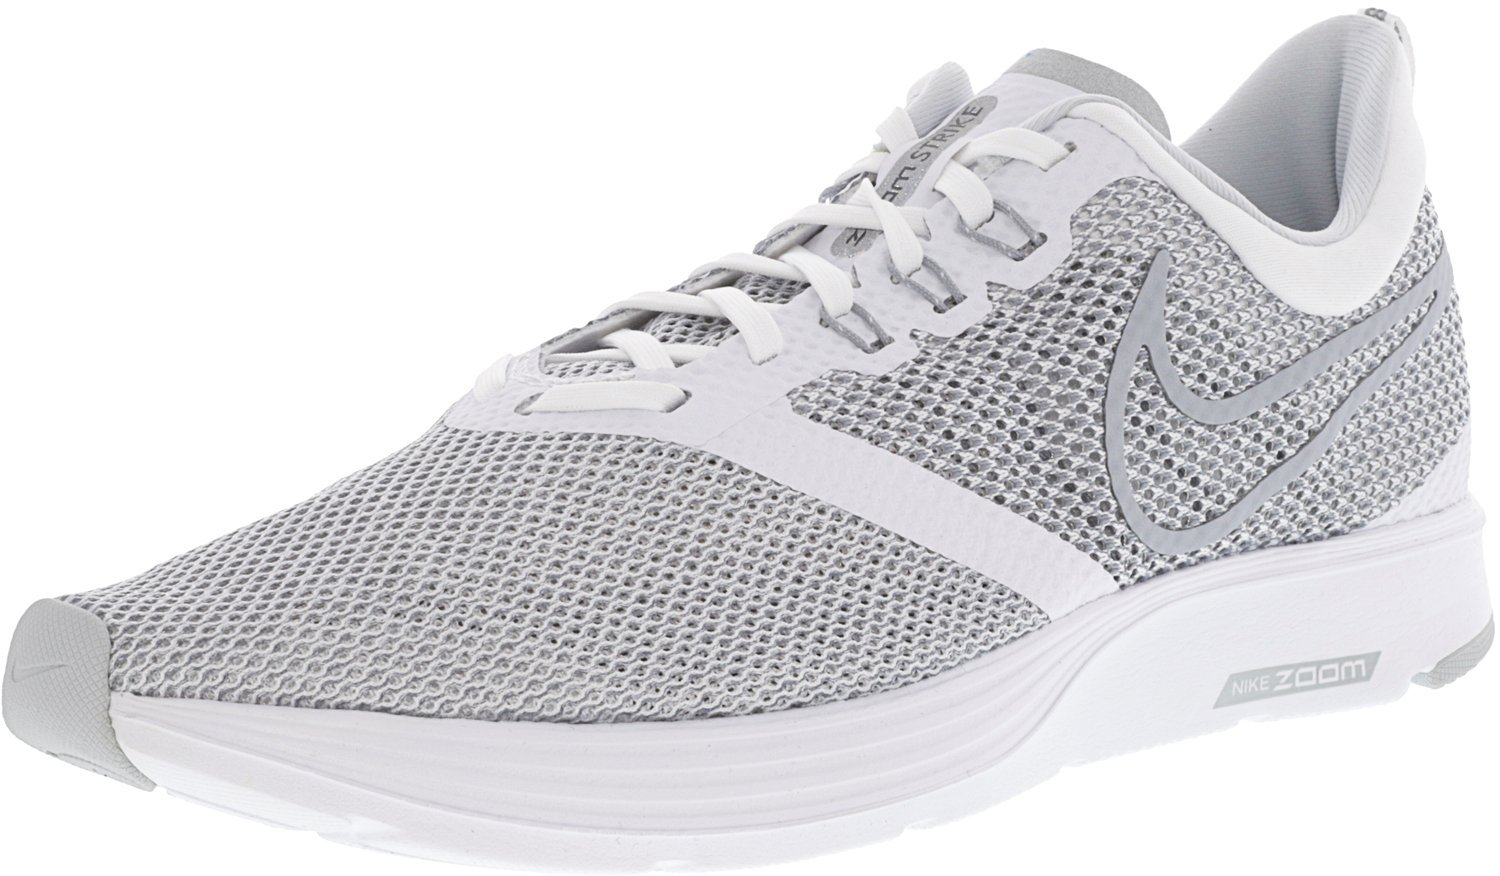 NIKE Shoe Women's Zoom Strike Running Shoe NIKE B06XTKQY9X 11.5 D(M) US|White-wolf Grey ba274b